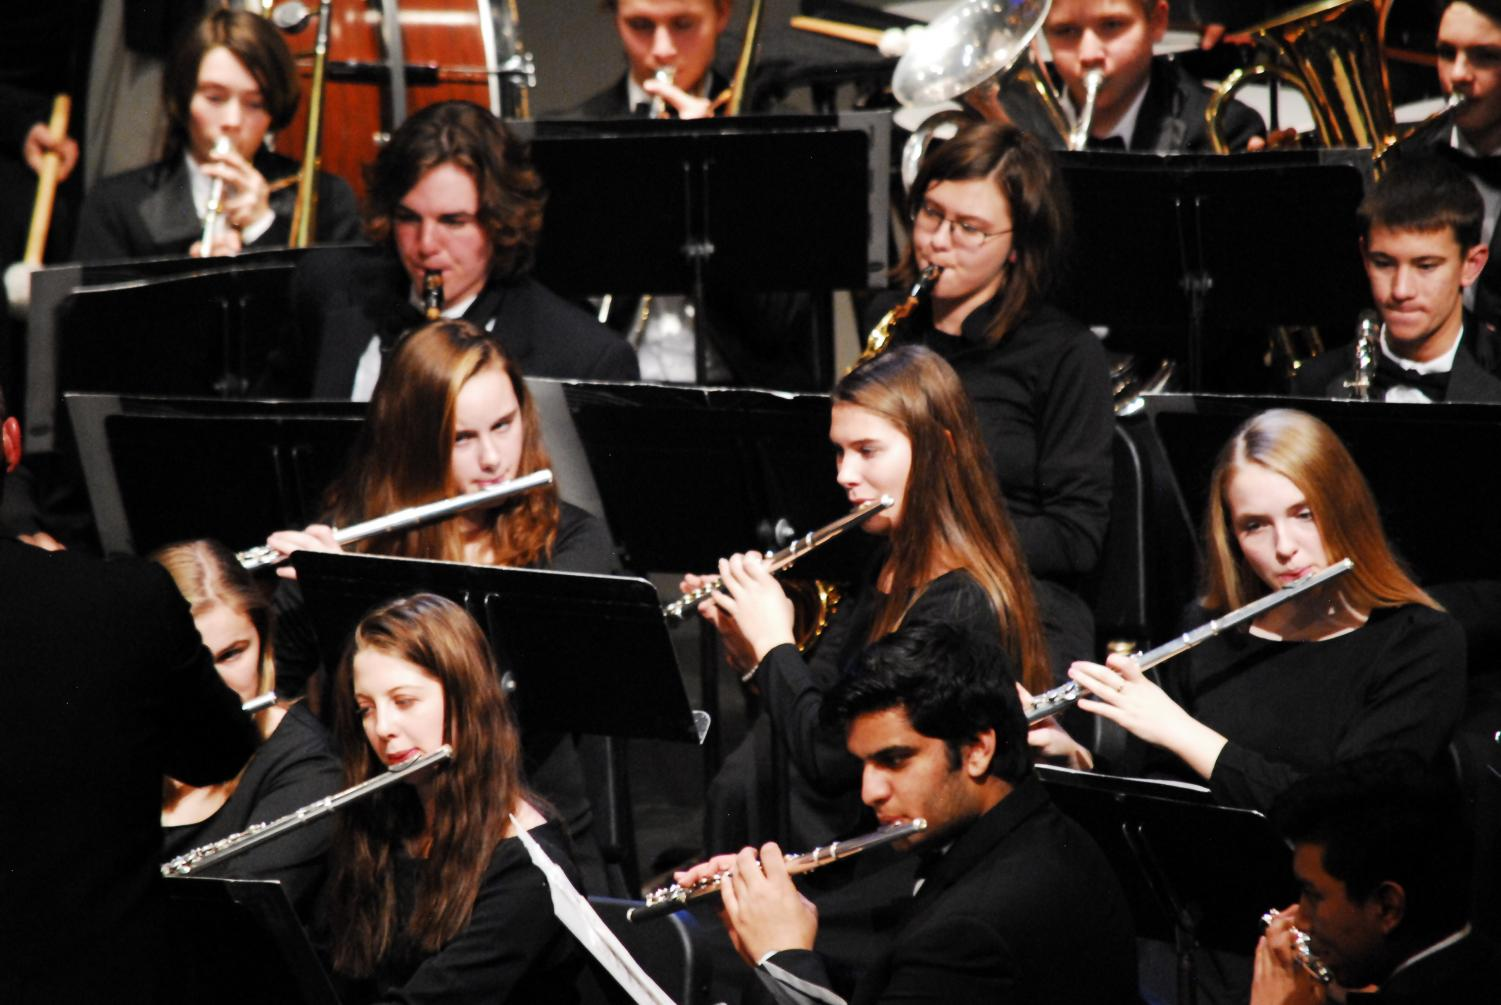 Cannon Falls High School Band plays their music for contest.